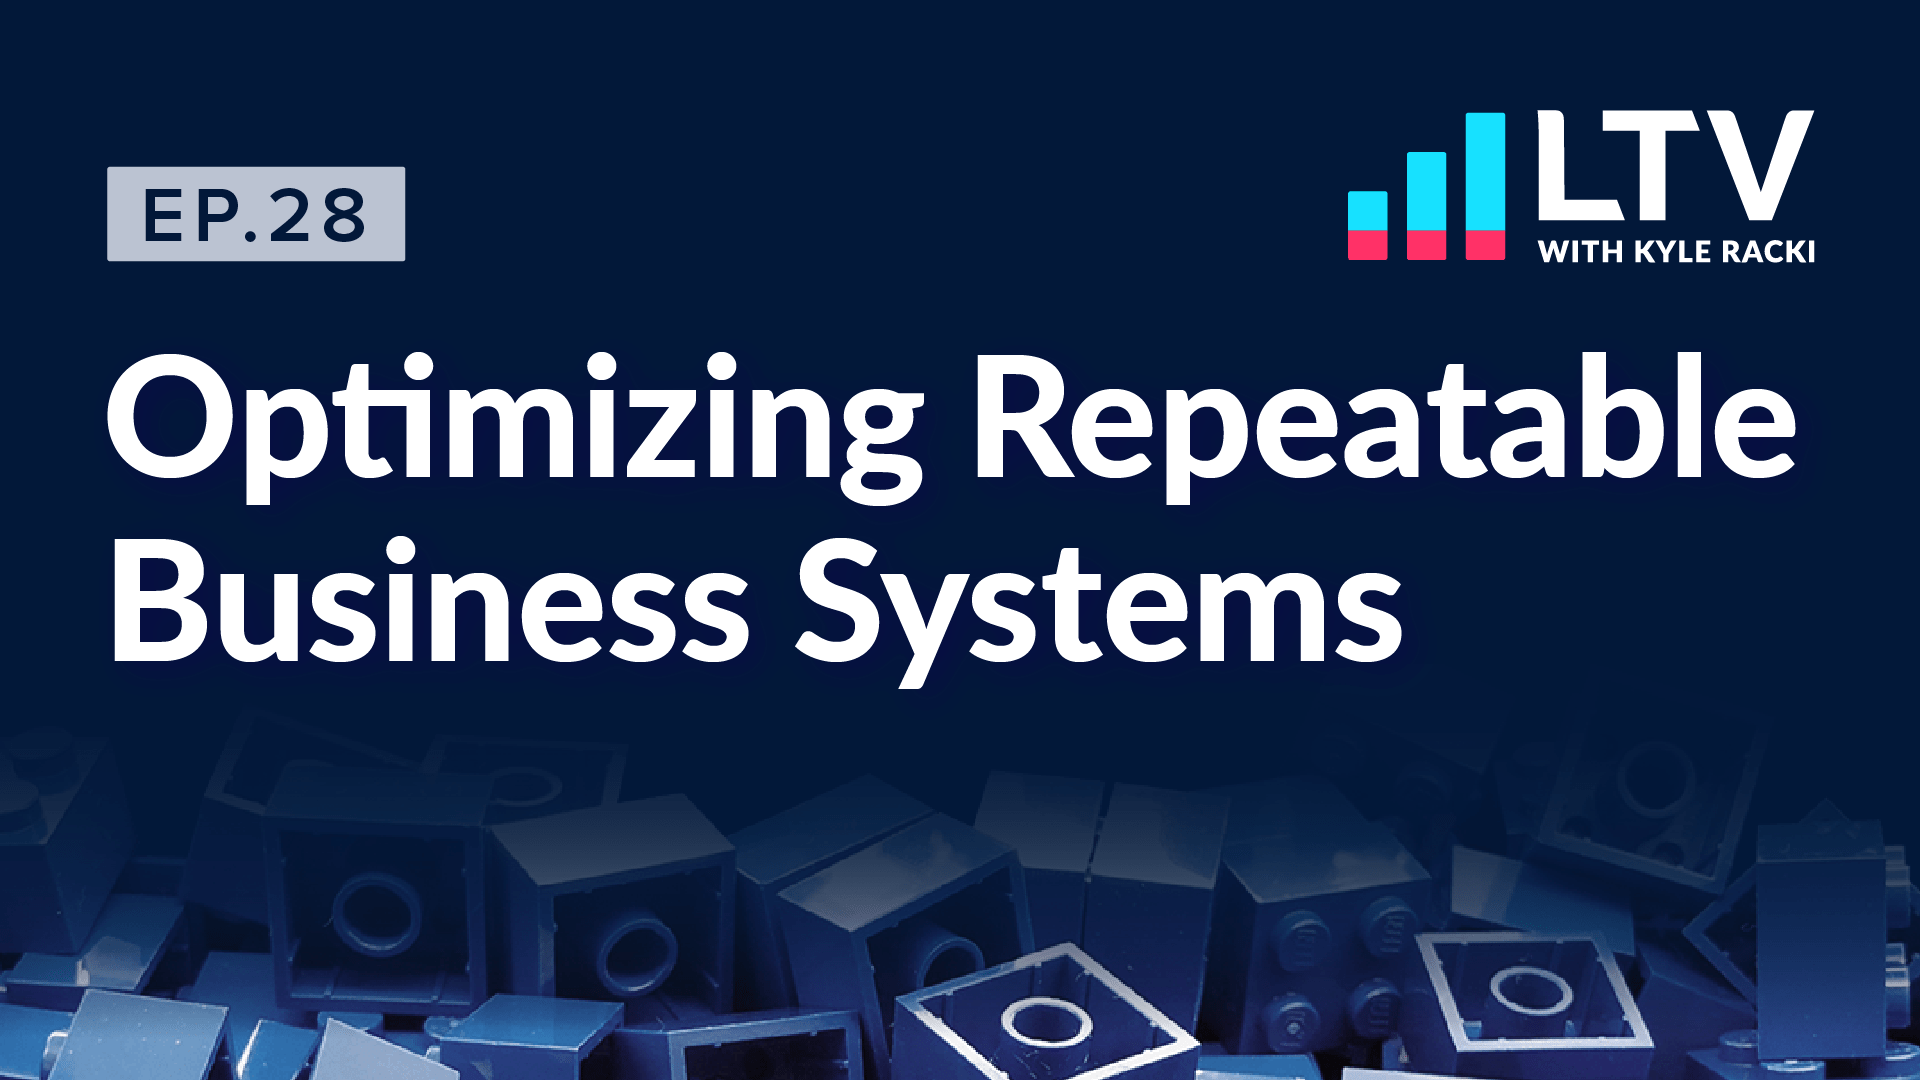 LTV Podcast Ep. 28: optimizing Repeatable Business Systems